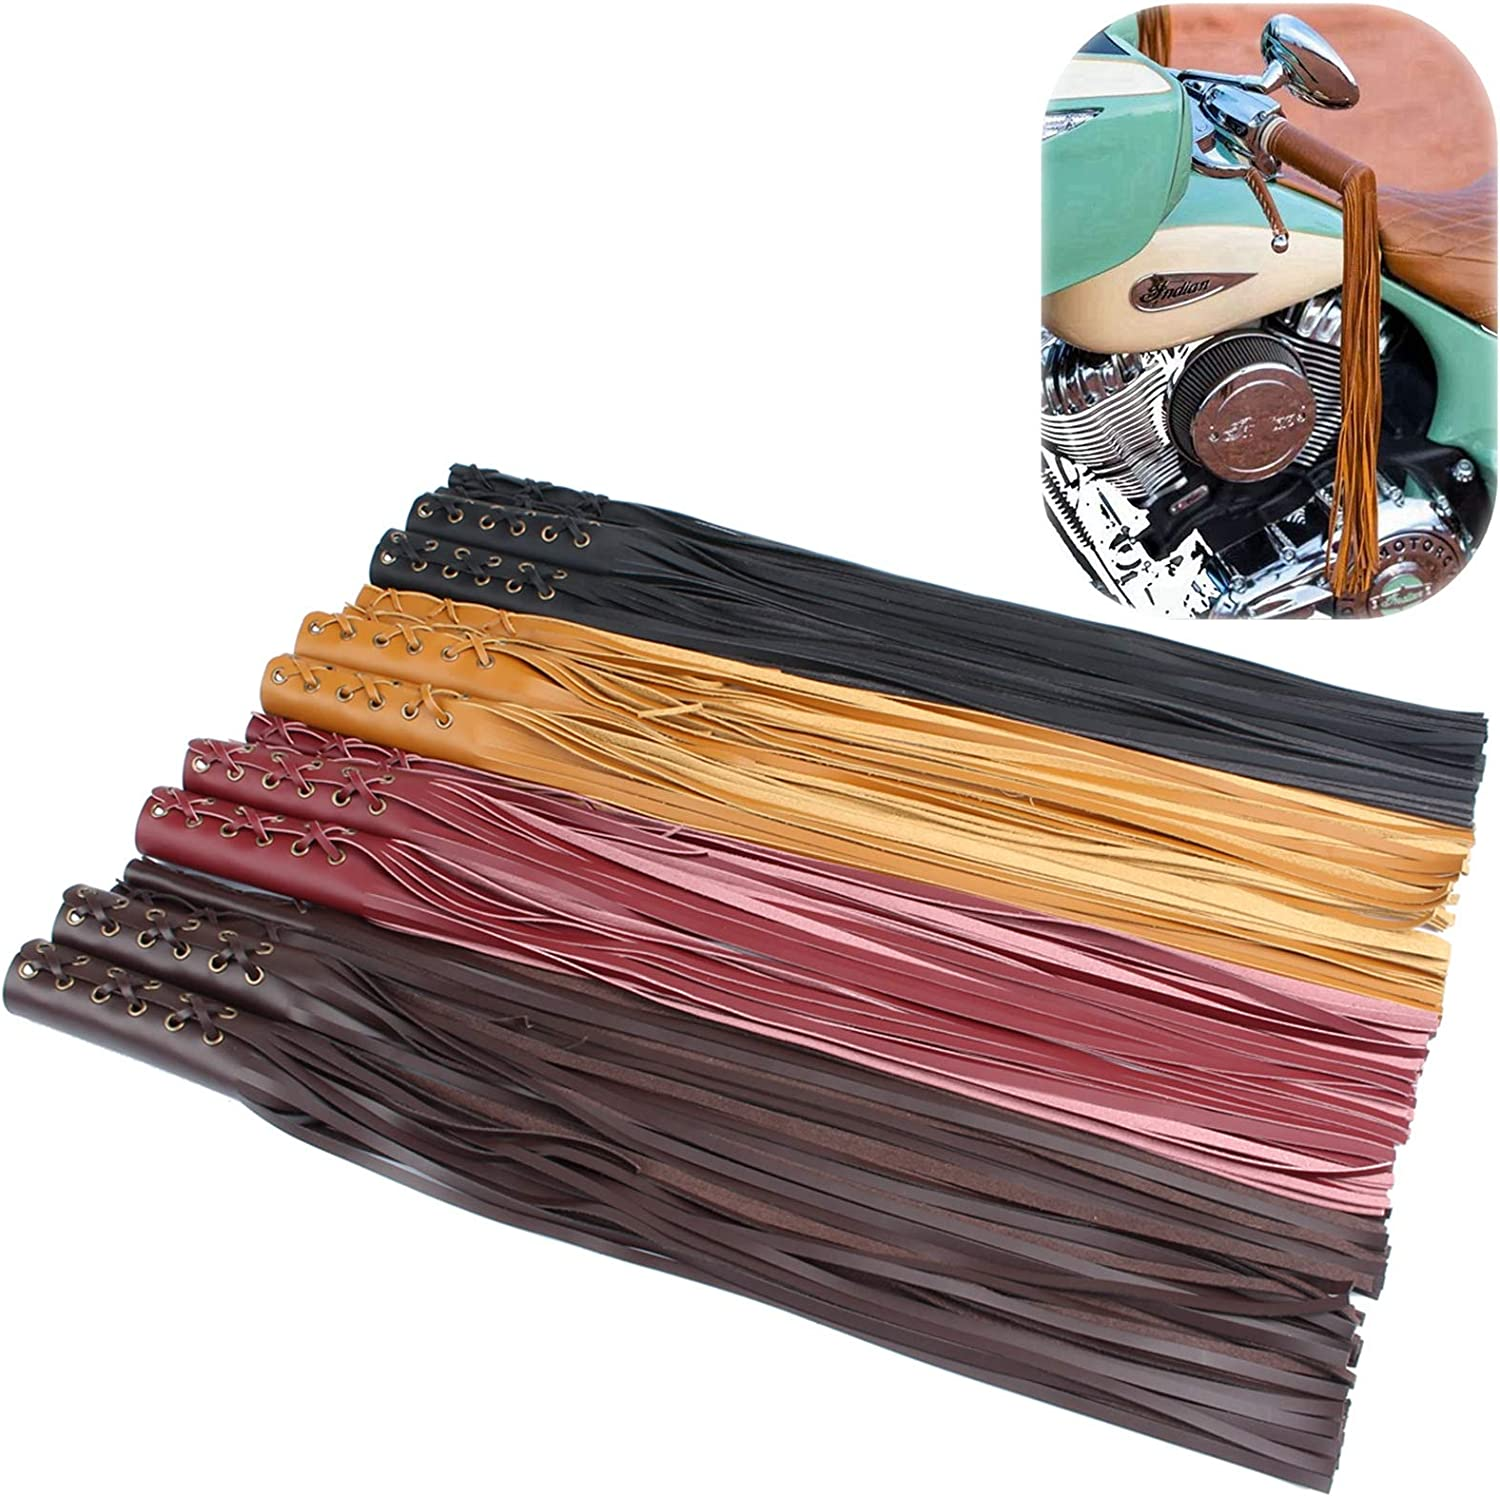 7//8 Motorcycle Grips Leather Fringe Lever Grip Covers for Cruiser Chopper Bobber Chief Vintage Classic Cafe Racer Universal